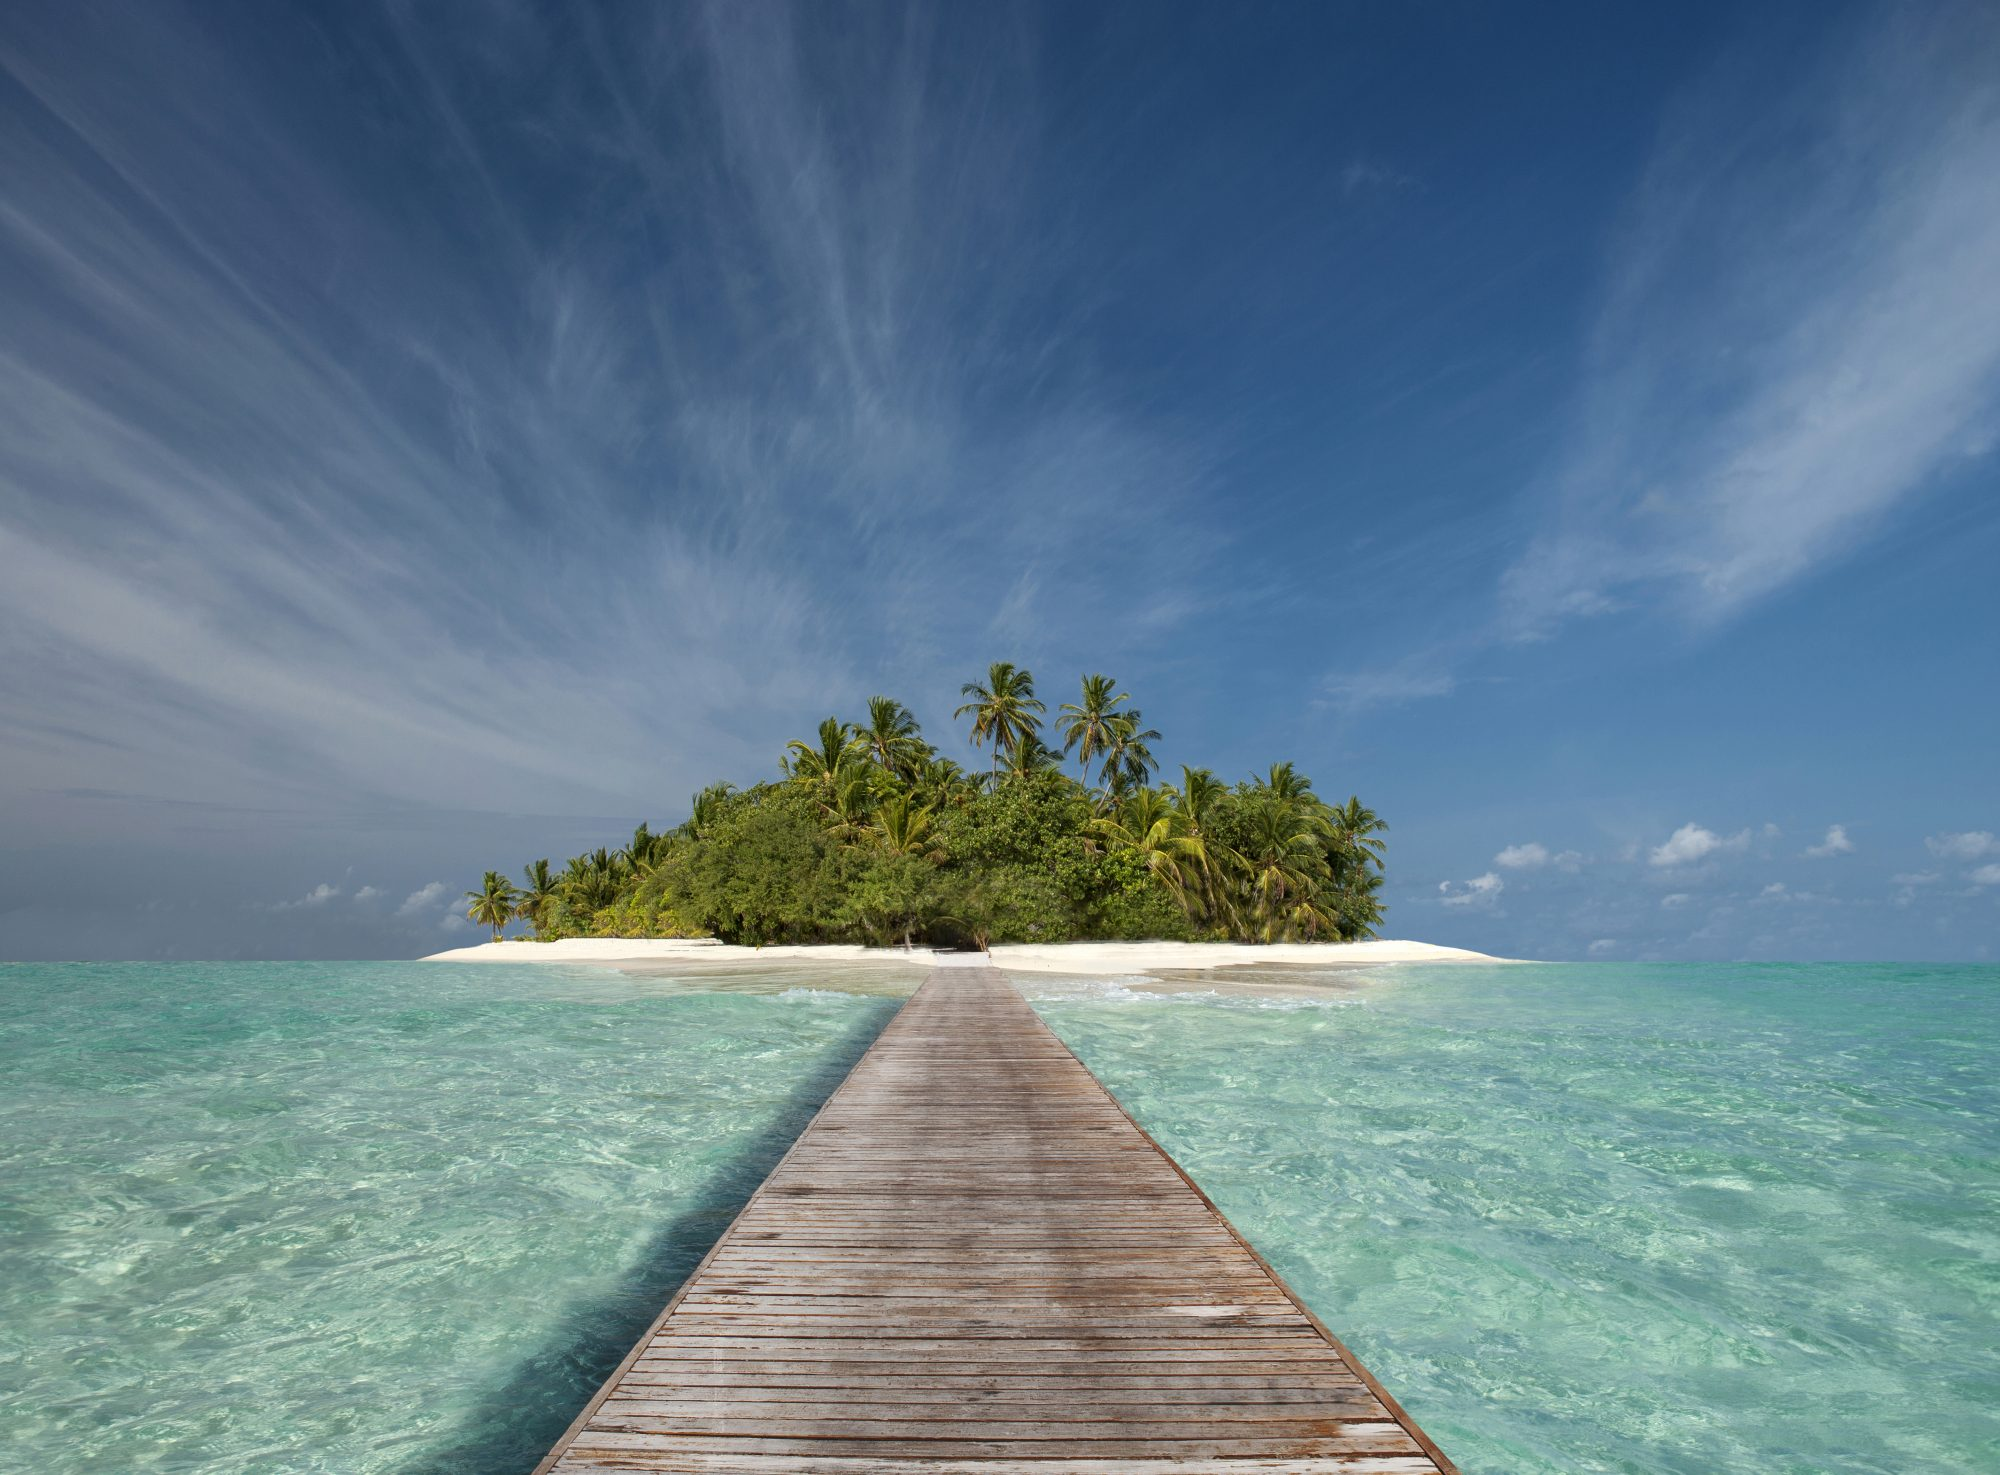 how-to-find-happiness-in-isolation: isolated island